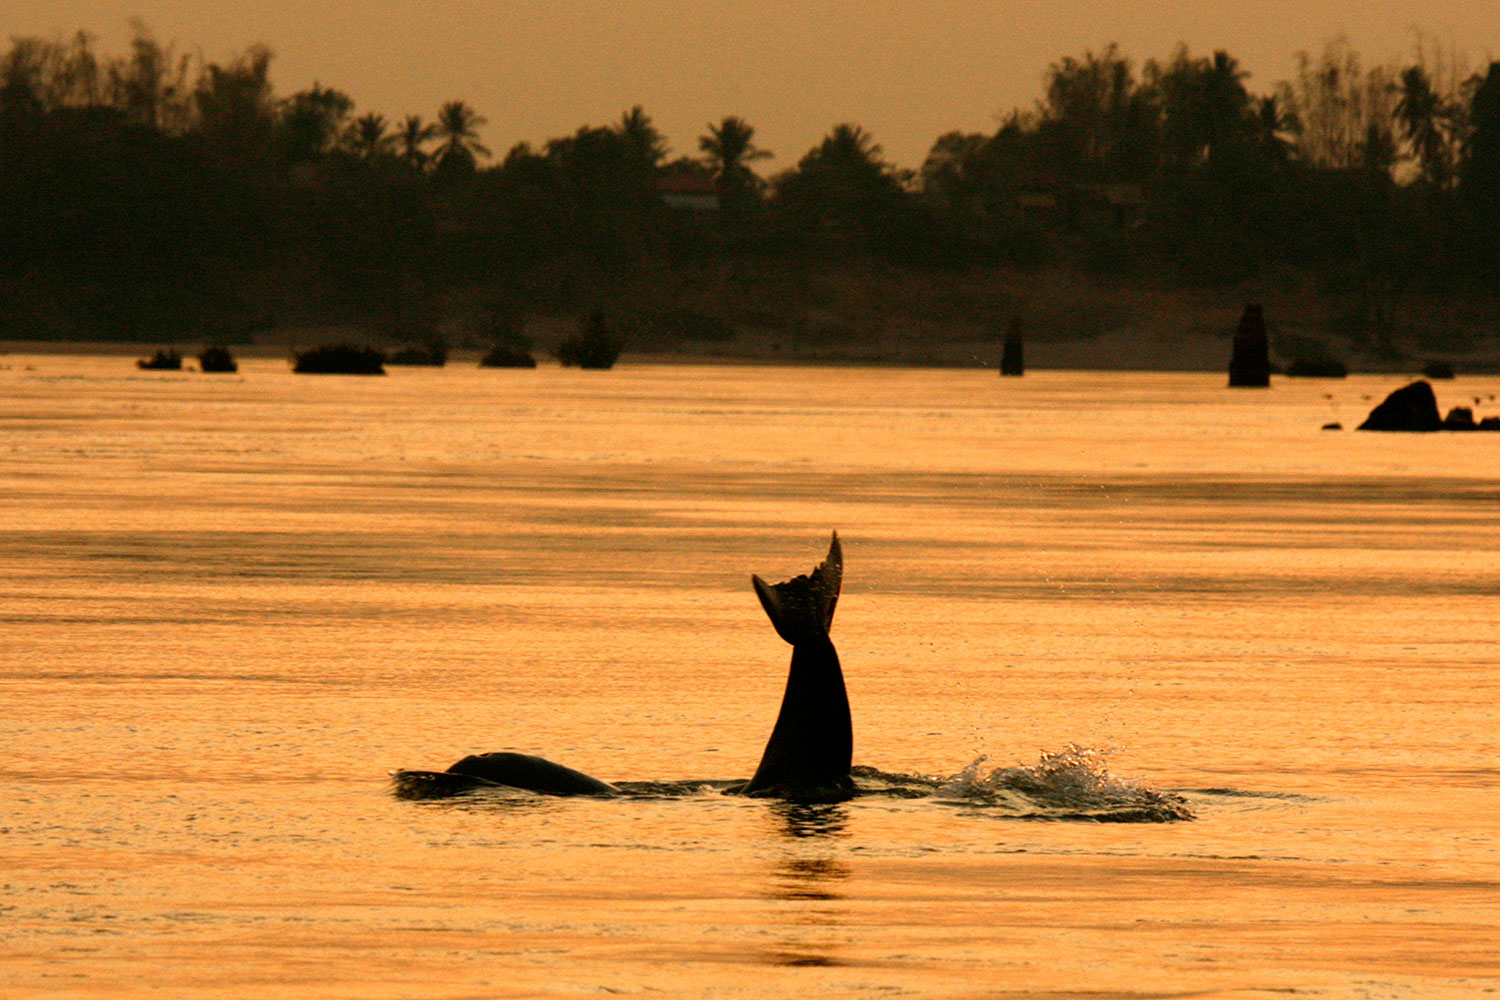 An Irrawaddy dolphin, also known as the Mekong dolphin, swims in the river at the Kampi village in Kratie province, 230 km (143 miles) northeast of Cambodia